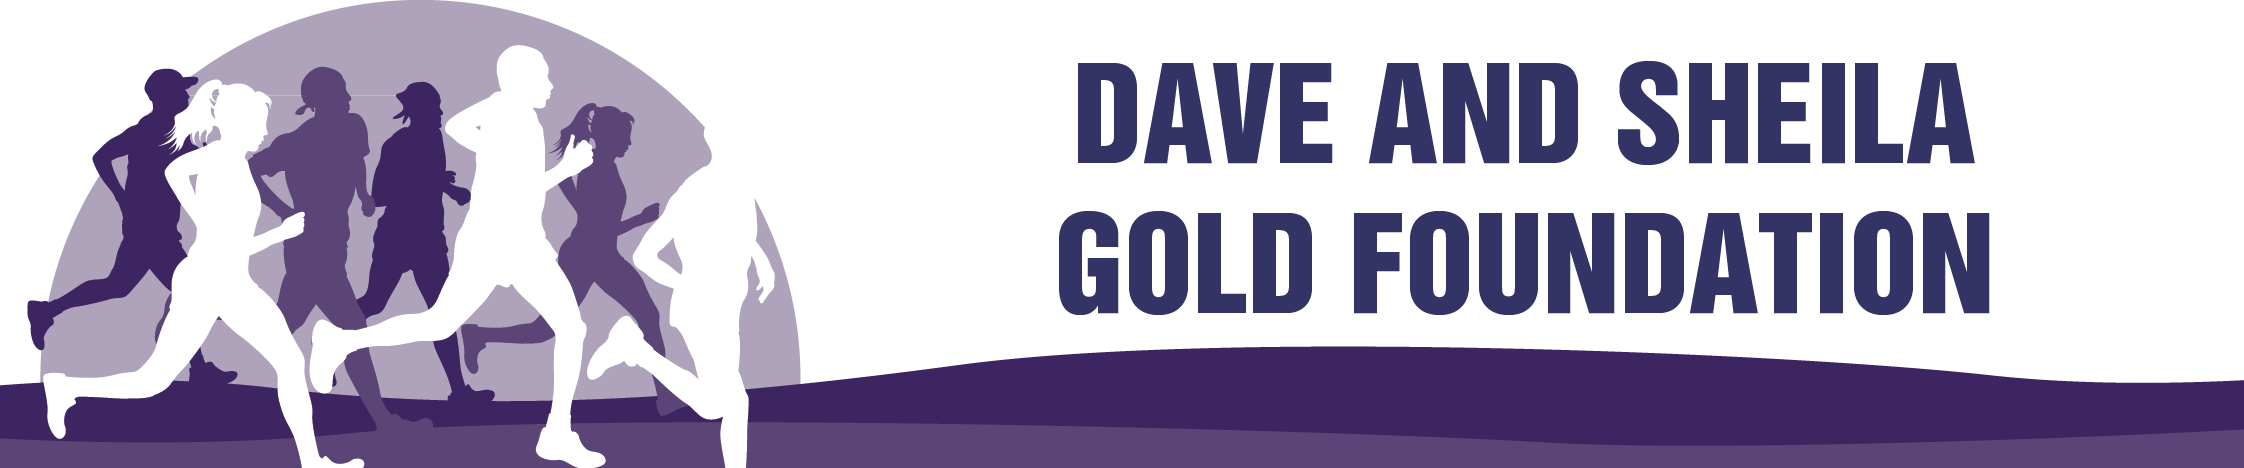 Dave and Sheila Gold Foundation